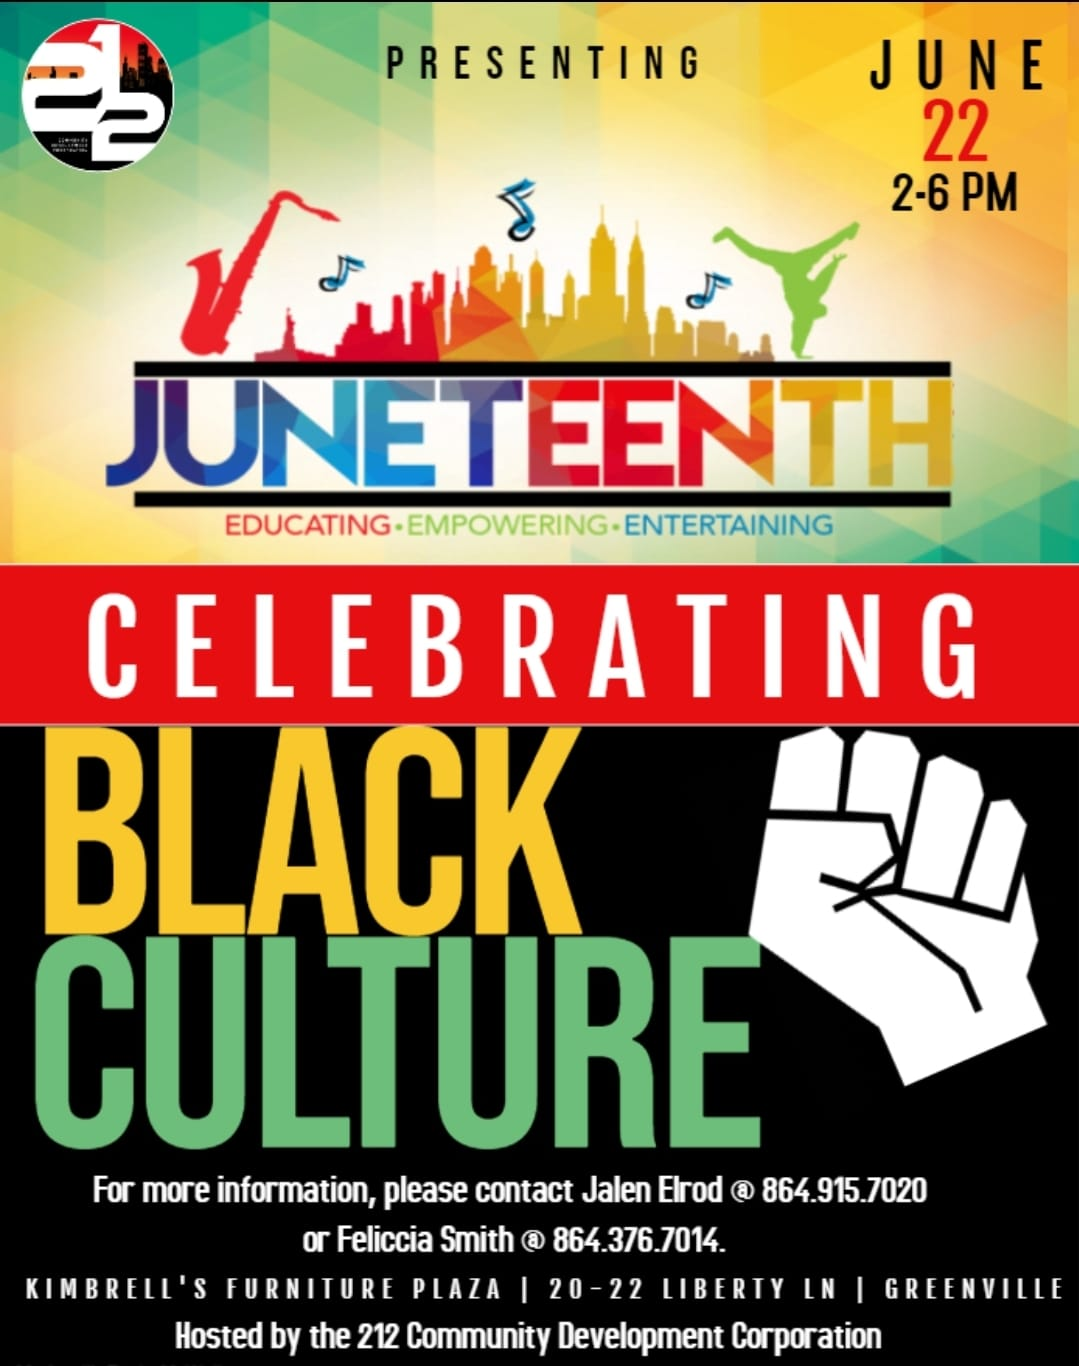 61503002_663564670754784_2874653613014122496_o Celebrating Juneteenth in South Carolina: Events to Attend this June